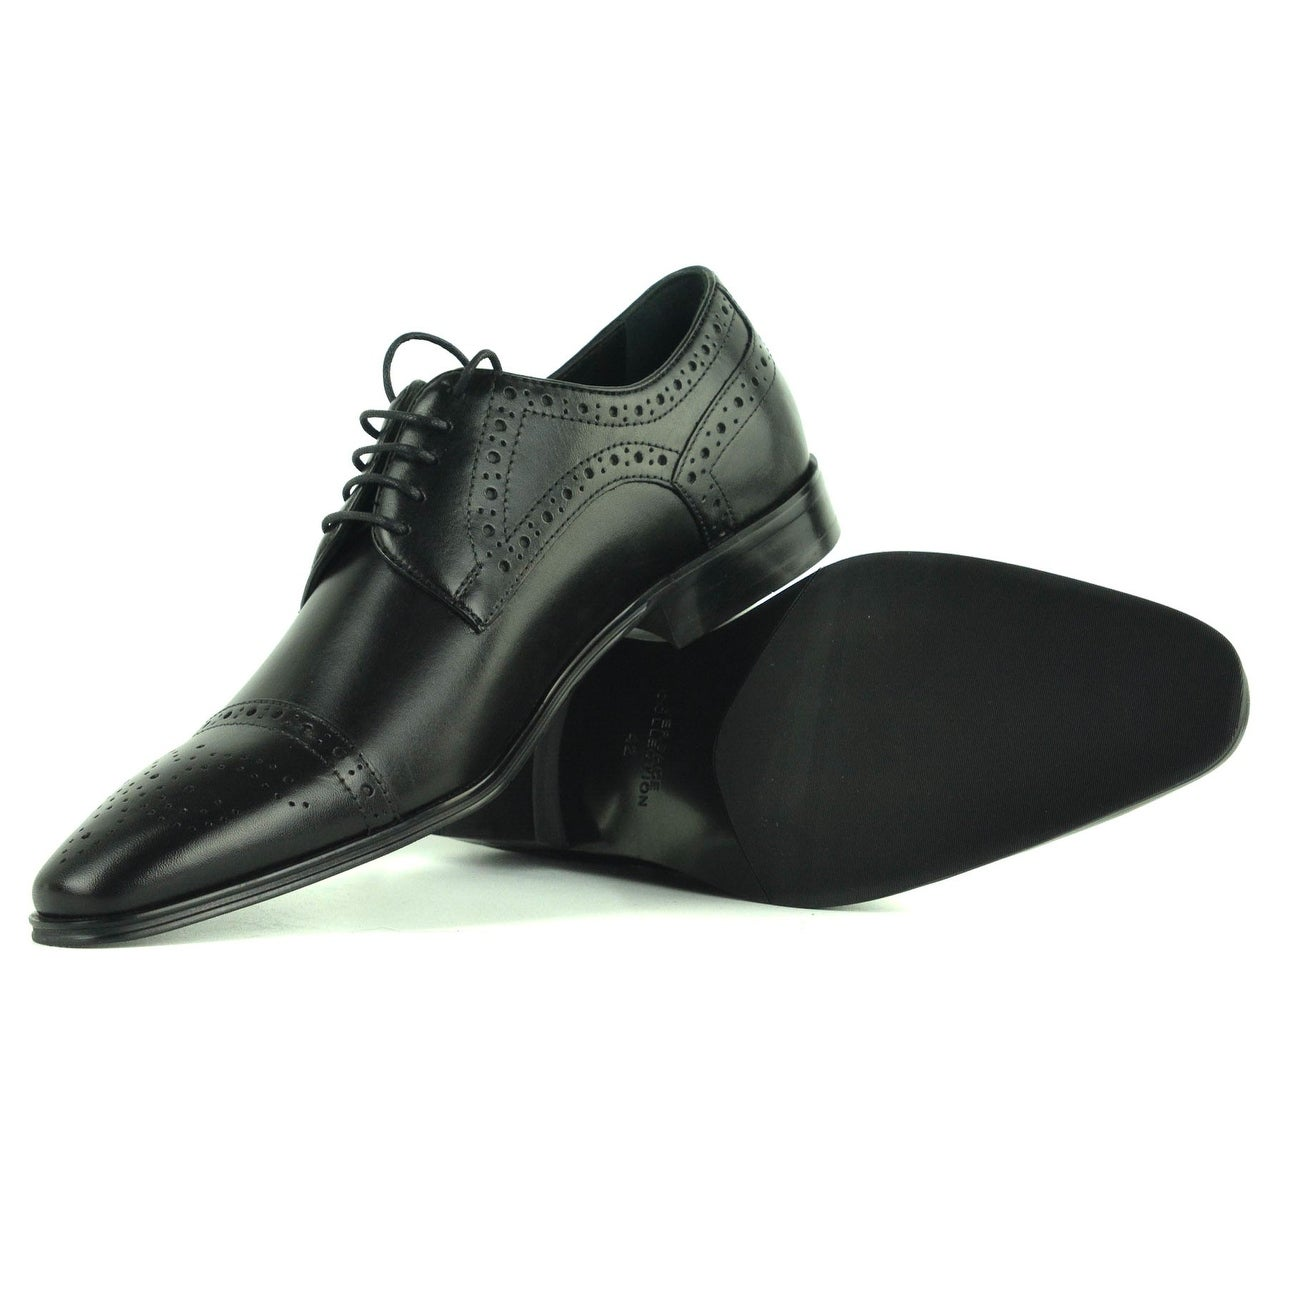 ad9e64383c8 Shop Versace Collection Men s Black Leather Cap Toe Oxford Shoes - Free  Shipping Today - Overstock - 23536174